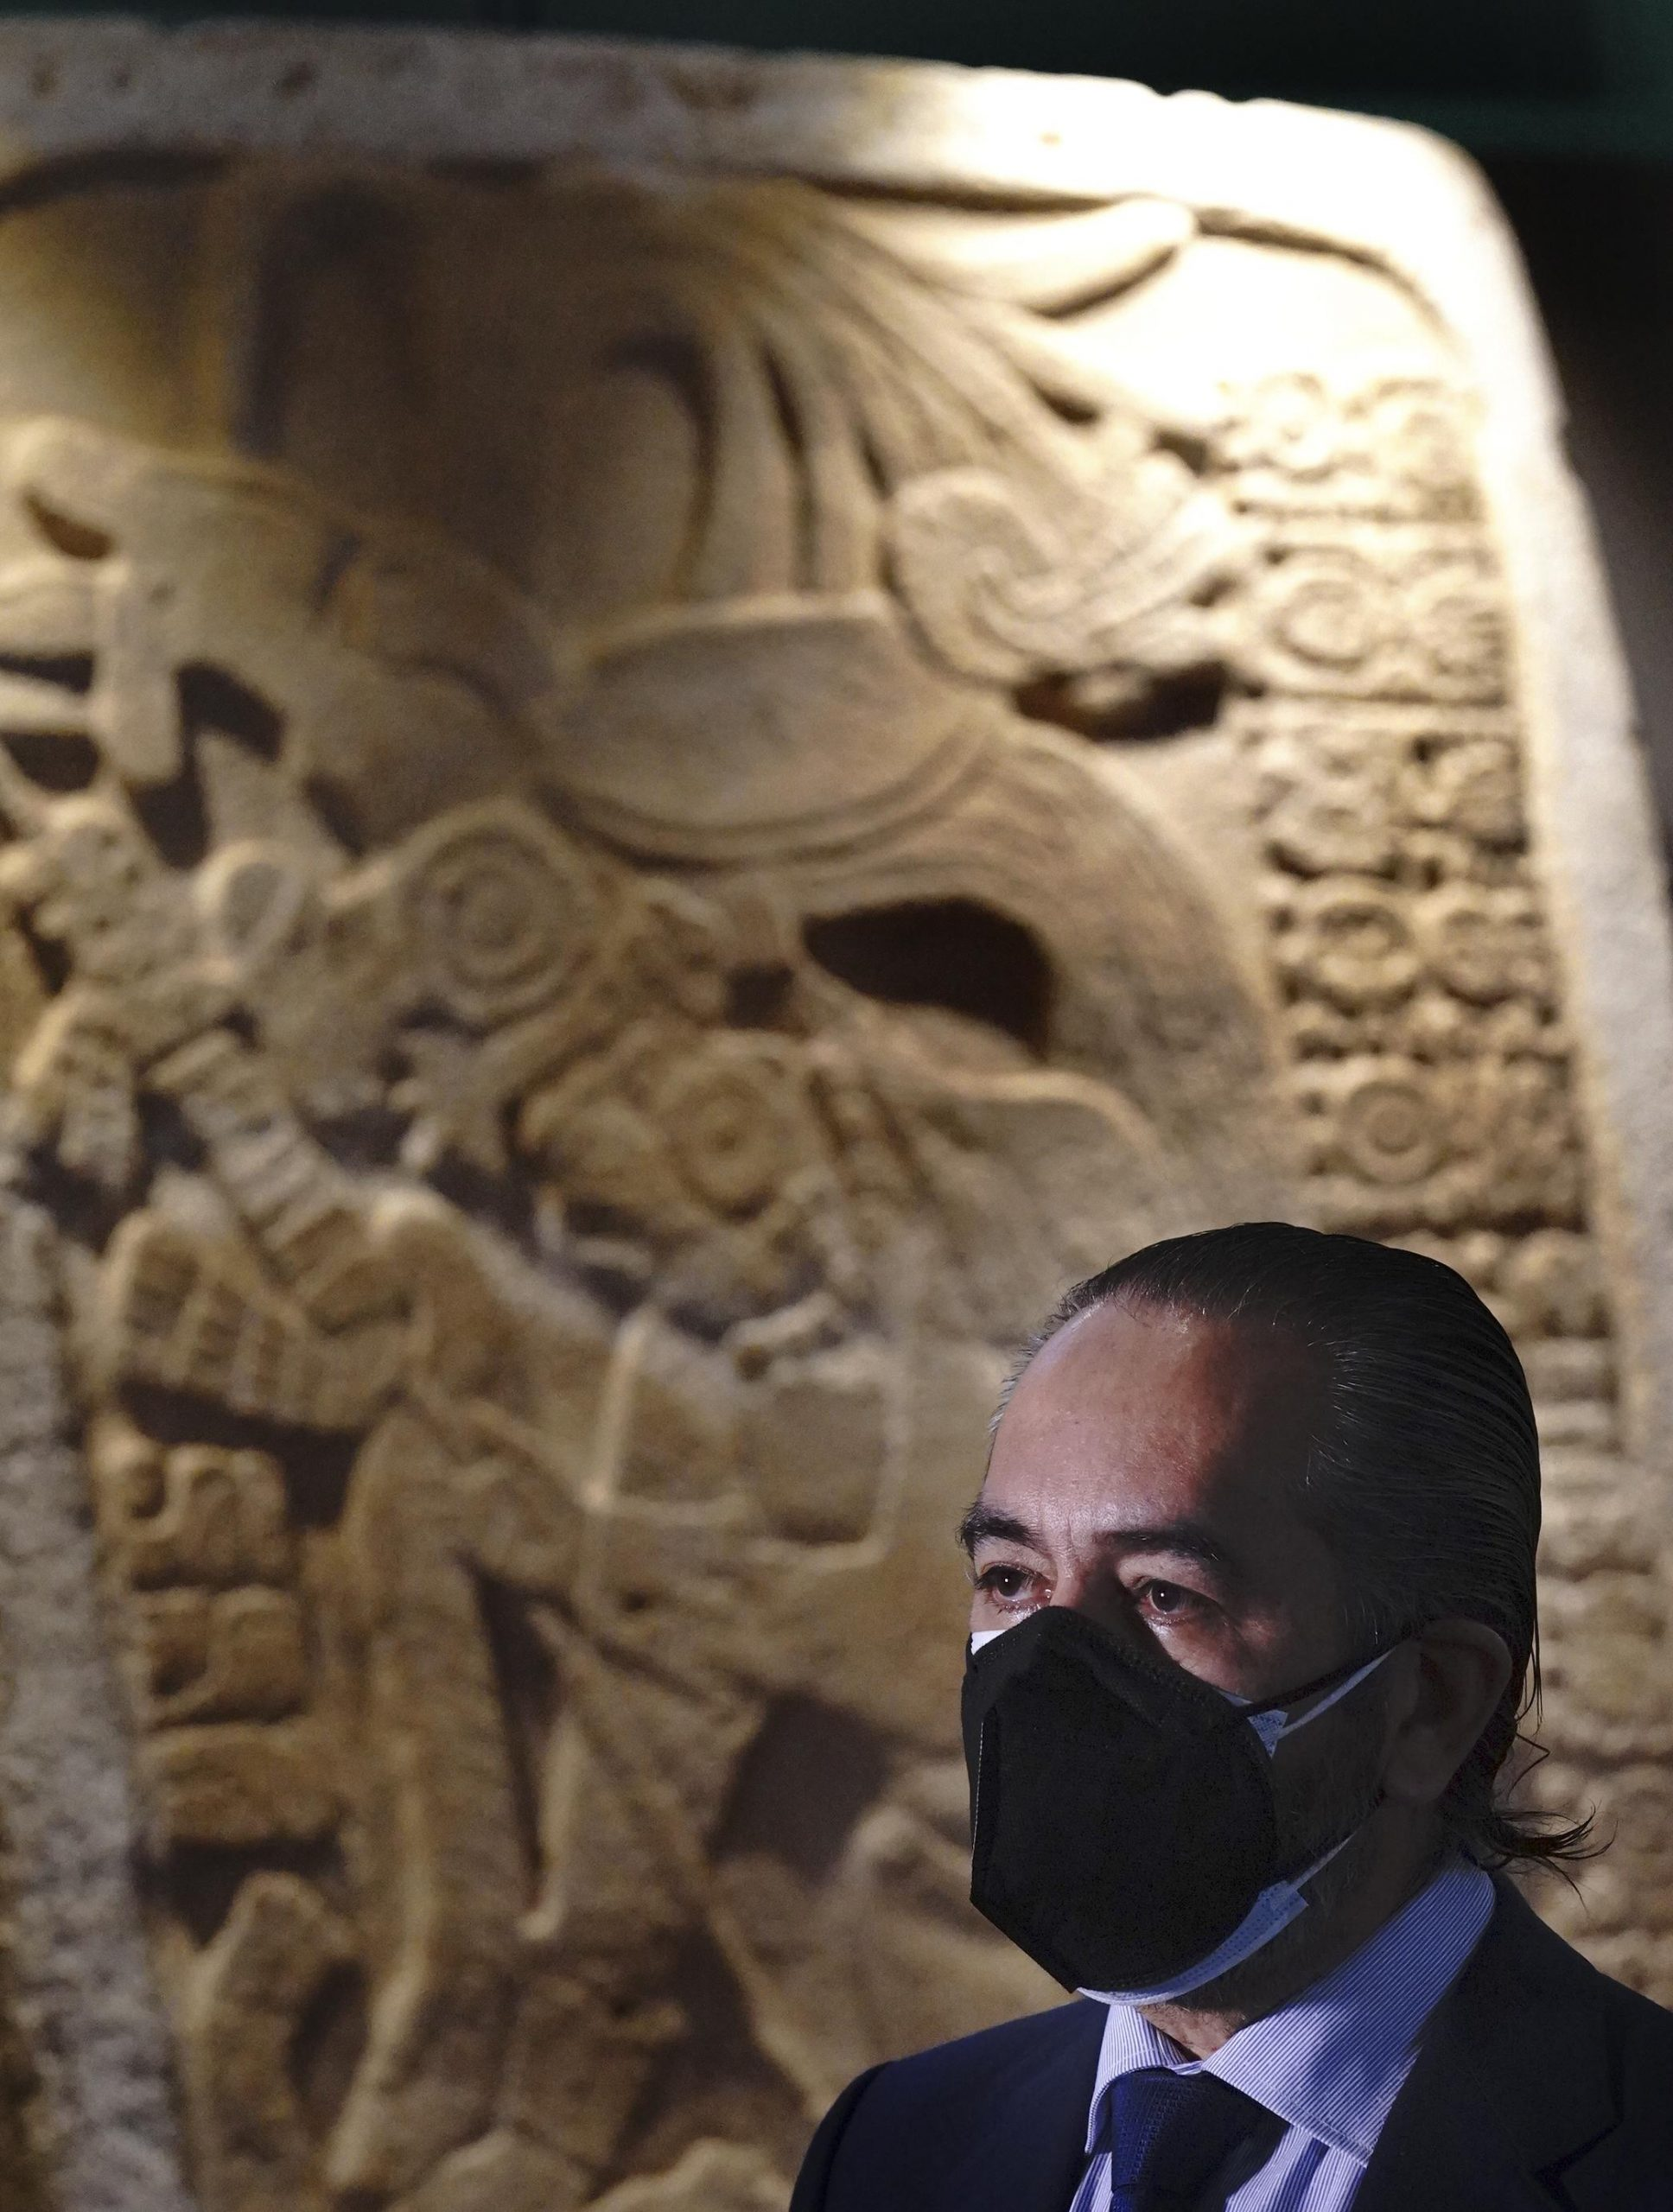 Mexico showcases pre-Hispanic artifacts recovered from abroad